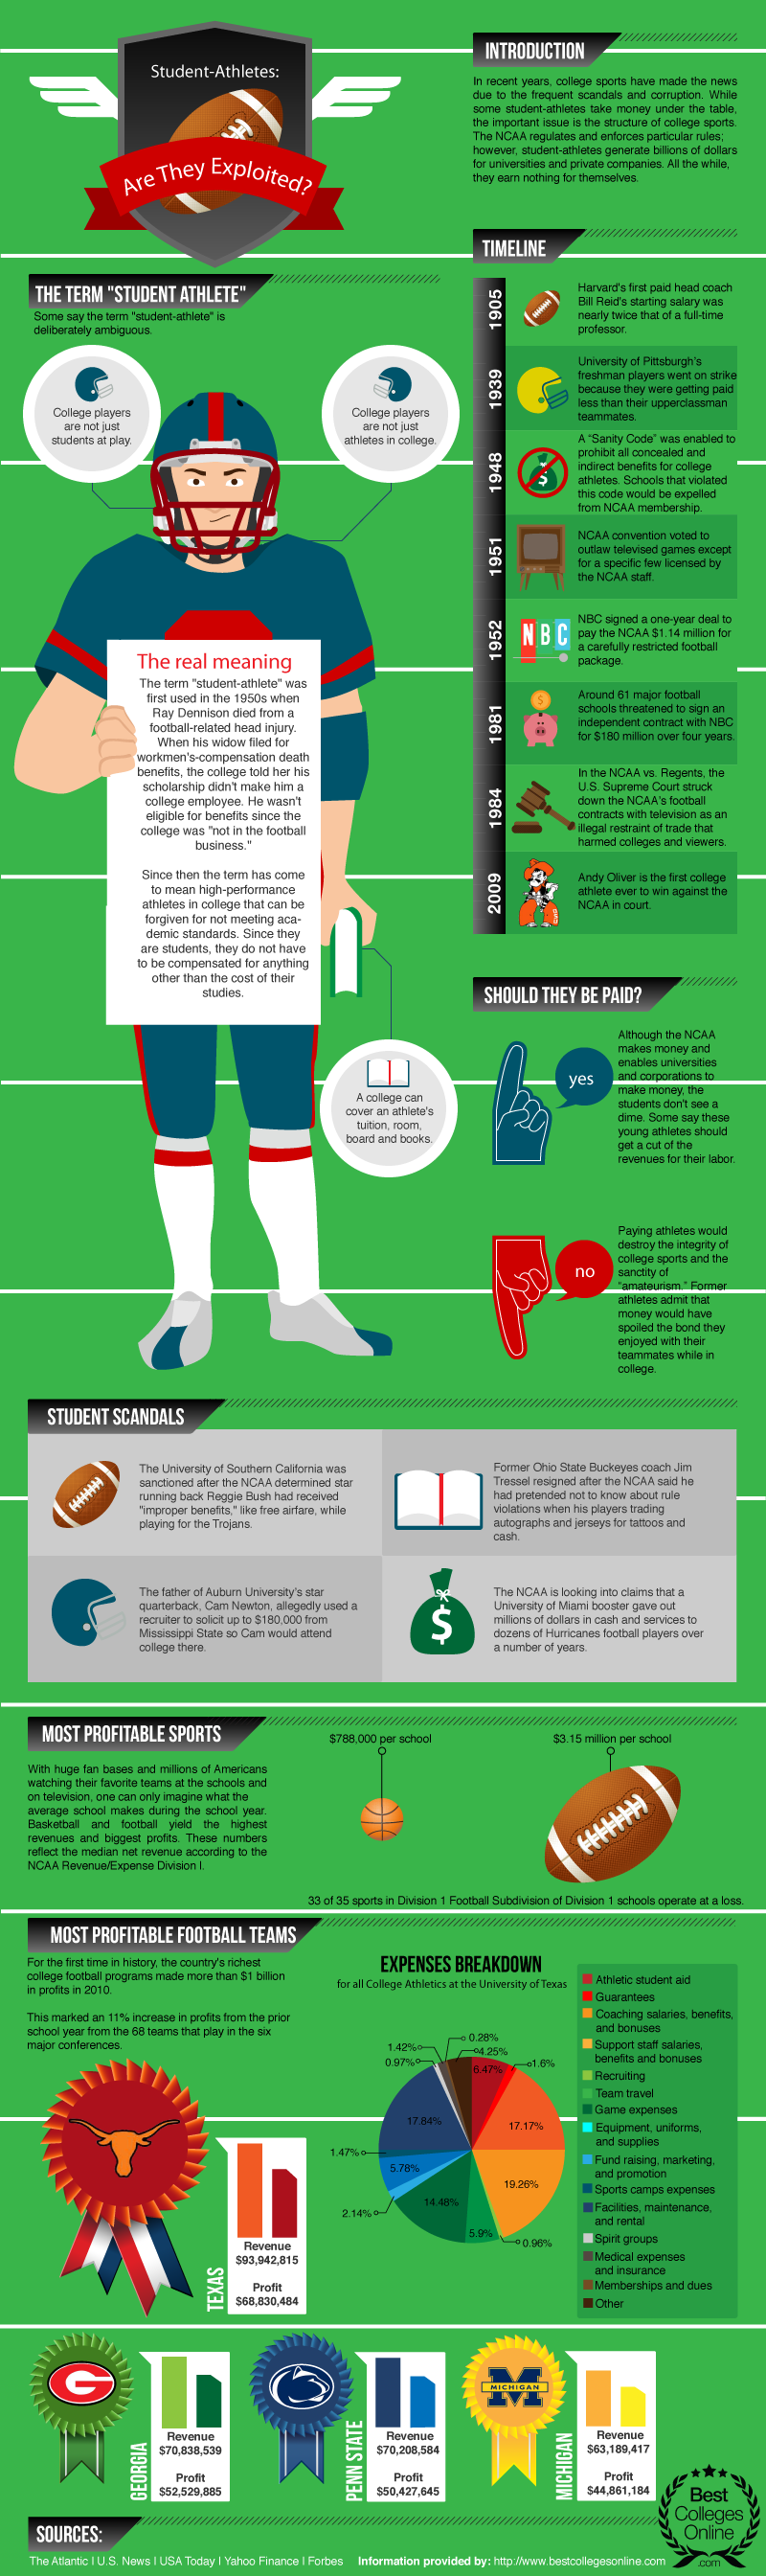 Student Athlete - A Source of Profit to Universities